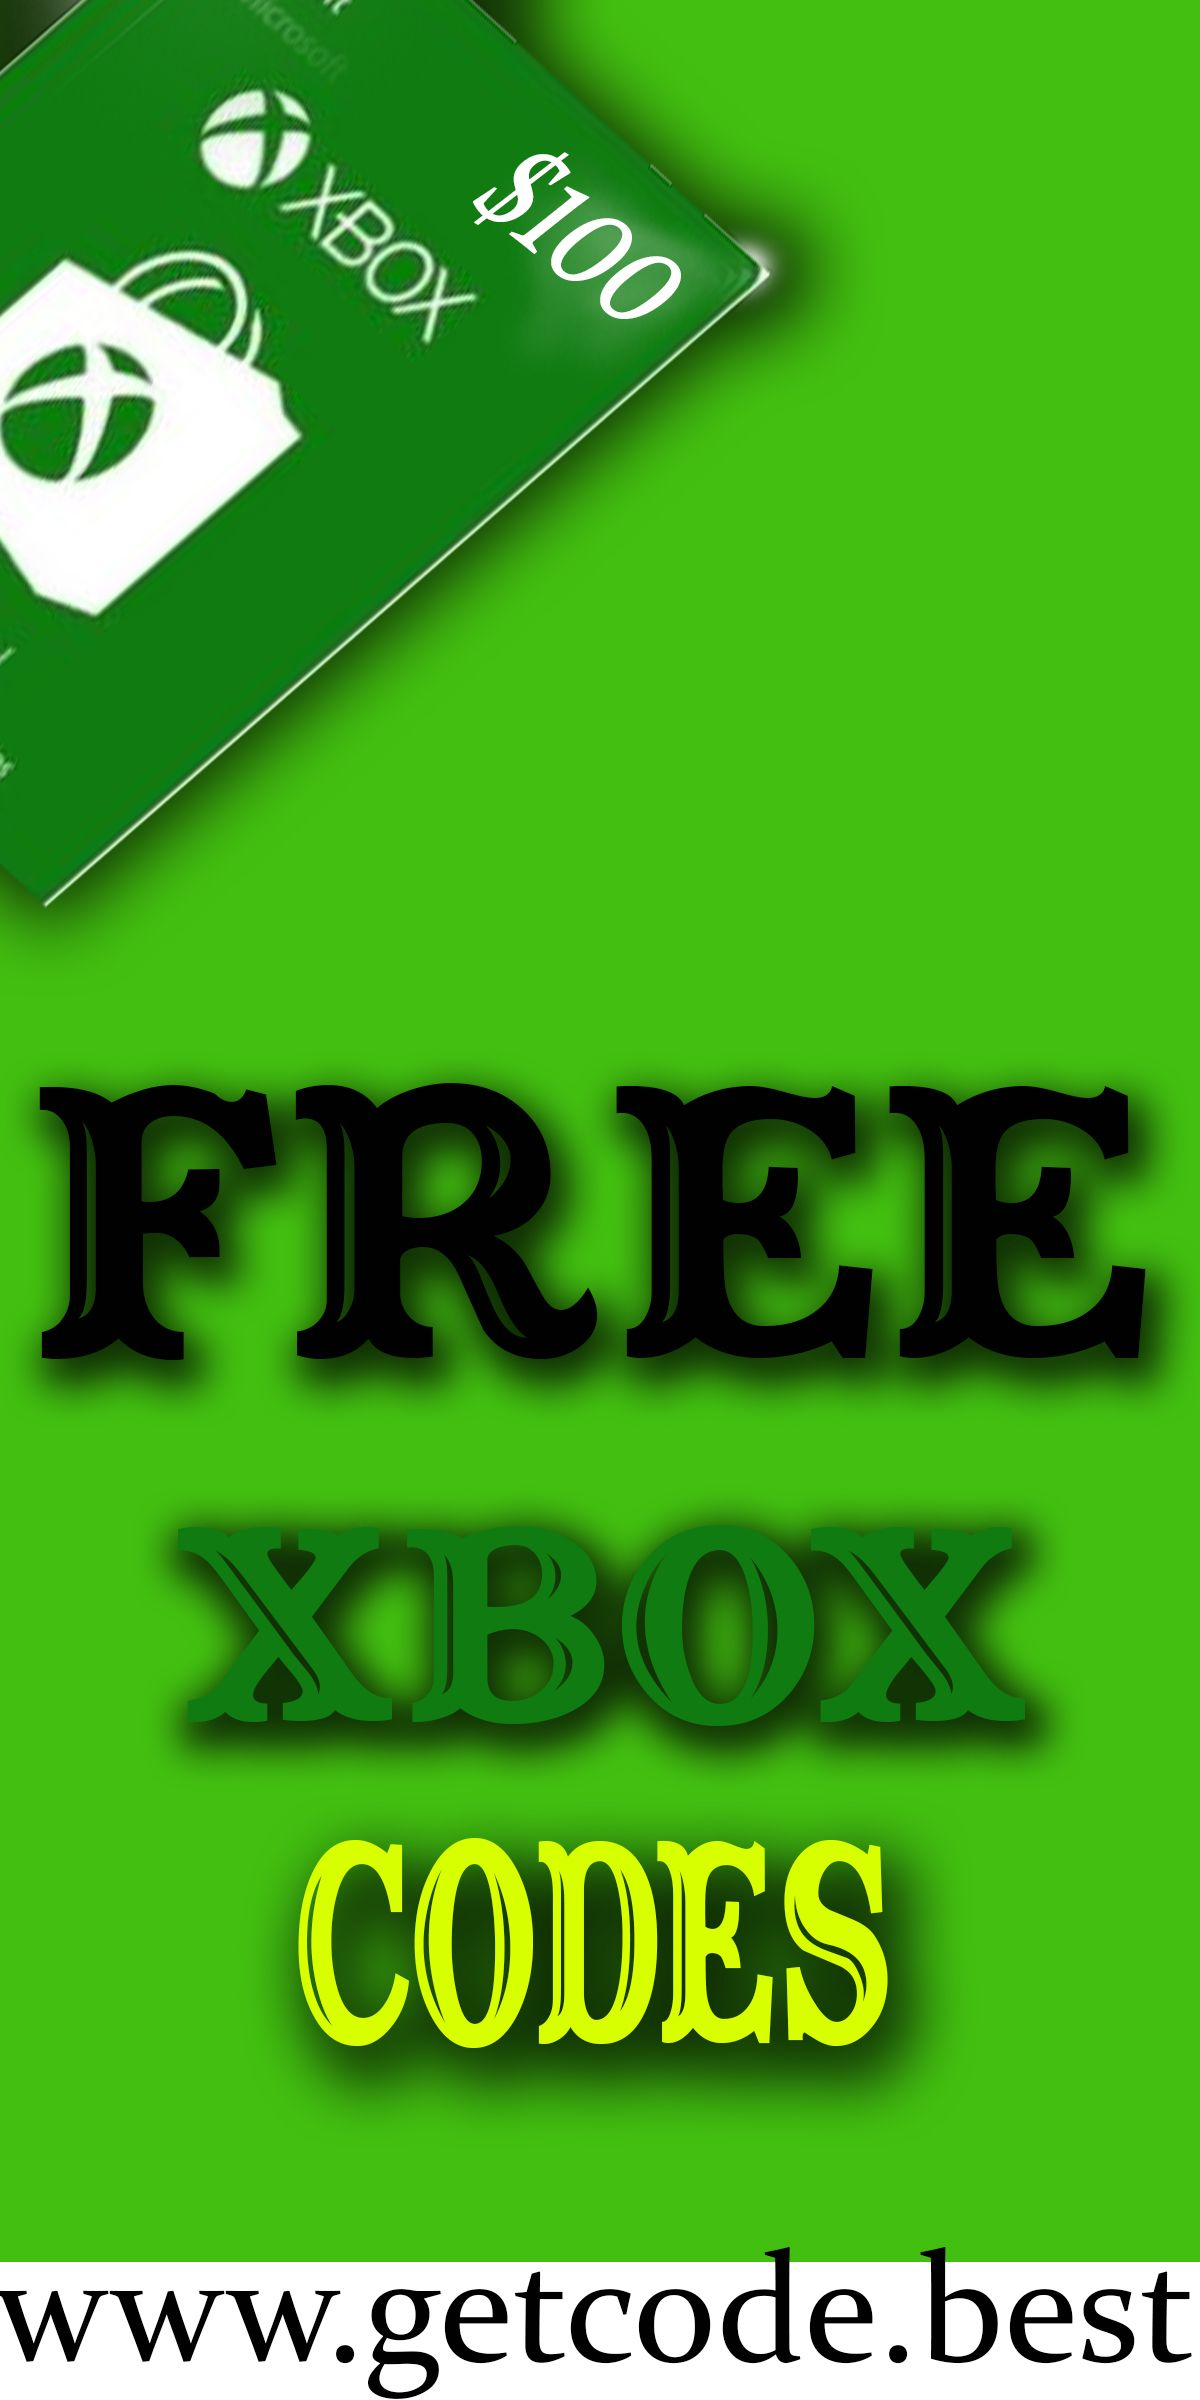 Xbox Live Codes Free Not Used